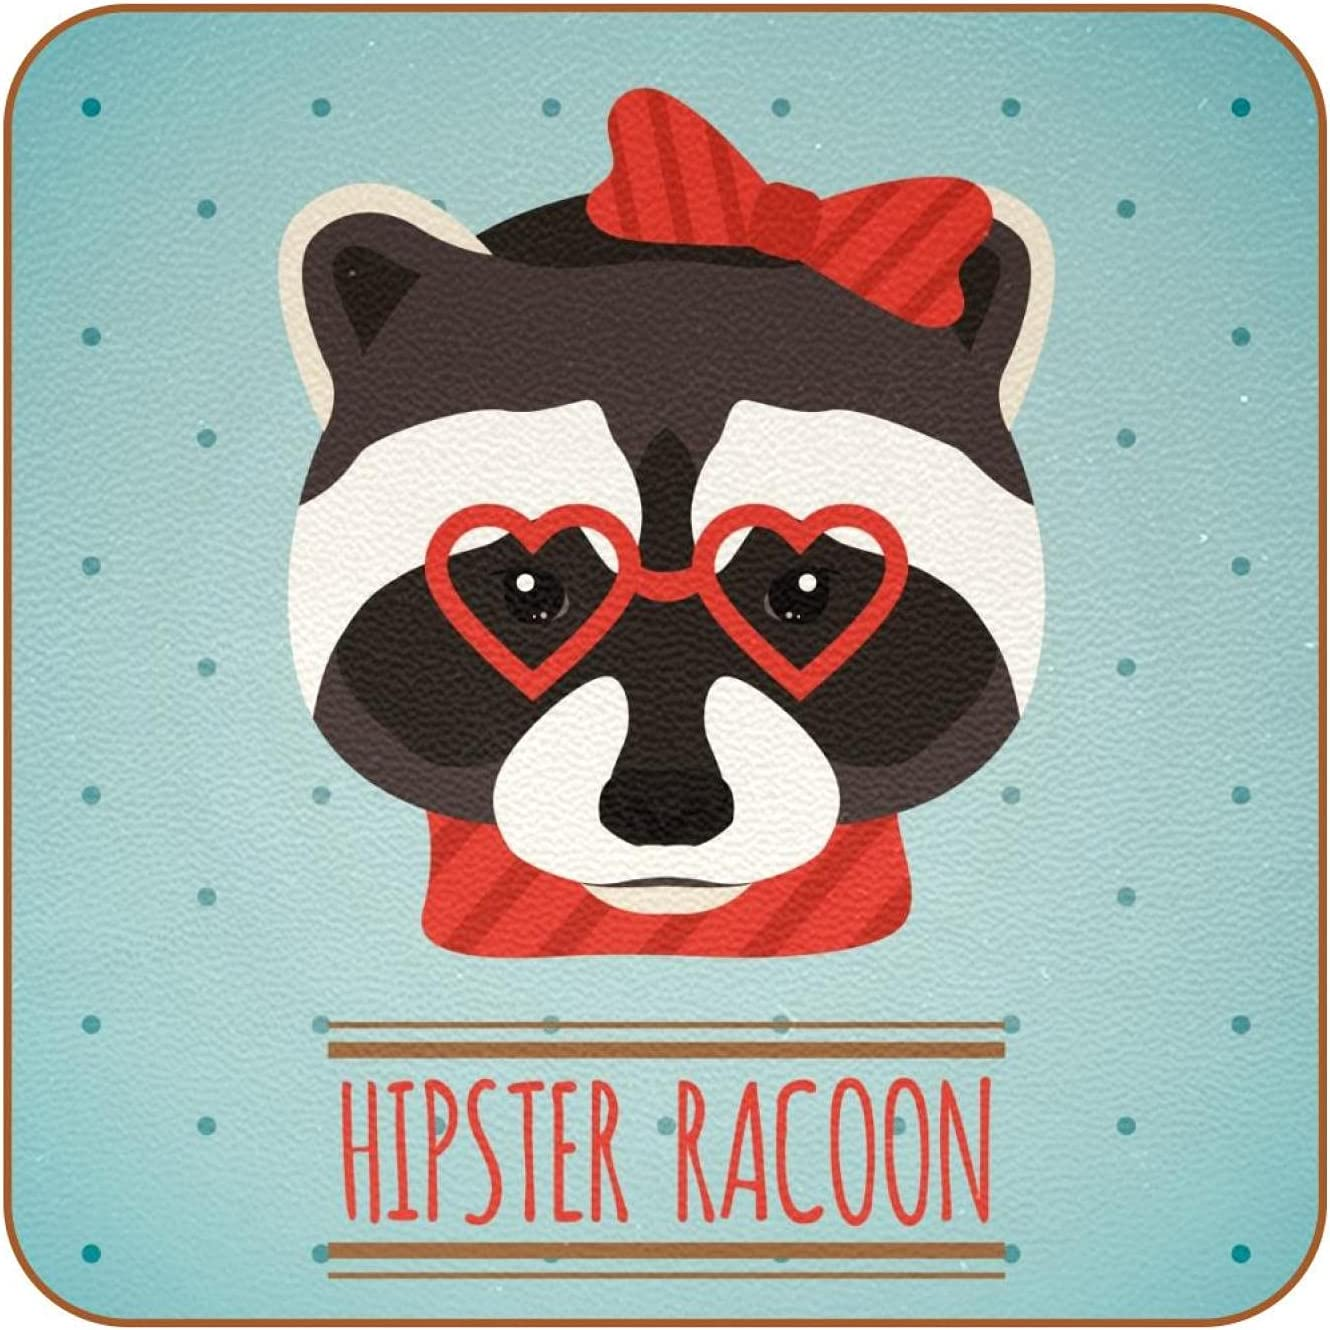 Coasters for Drinks Hipster Raccoon Love Glasses Leather Square Mug Cup Pad Mat for Protect Furniture, Heat Resistant, Kitchen Bar Decor, Set of 6